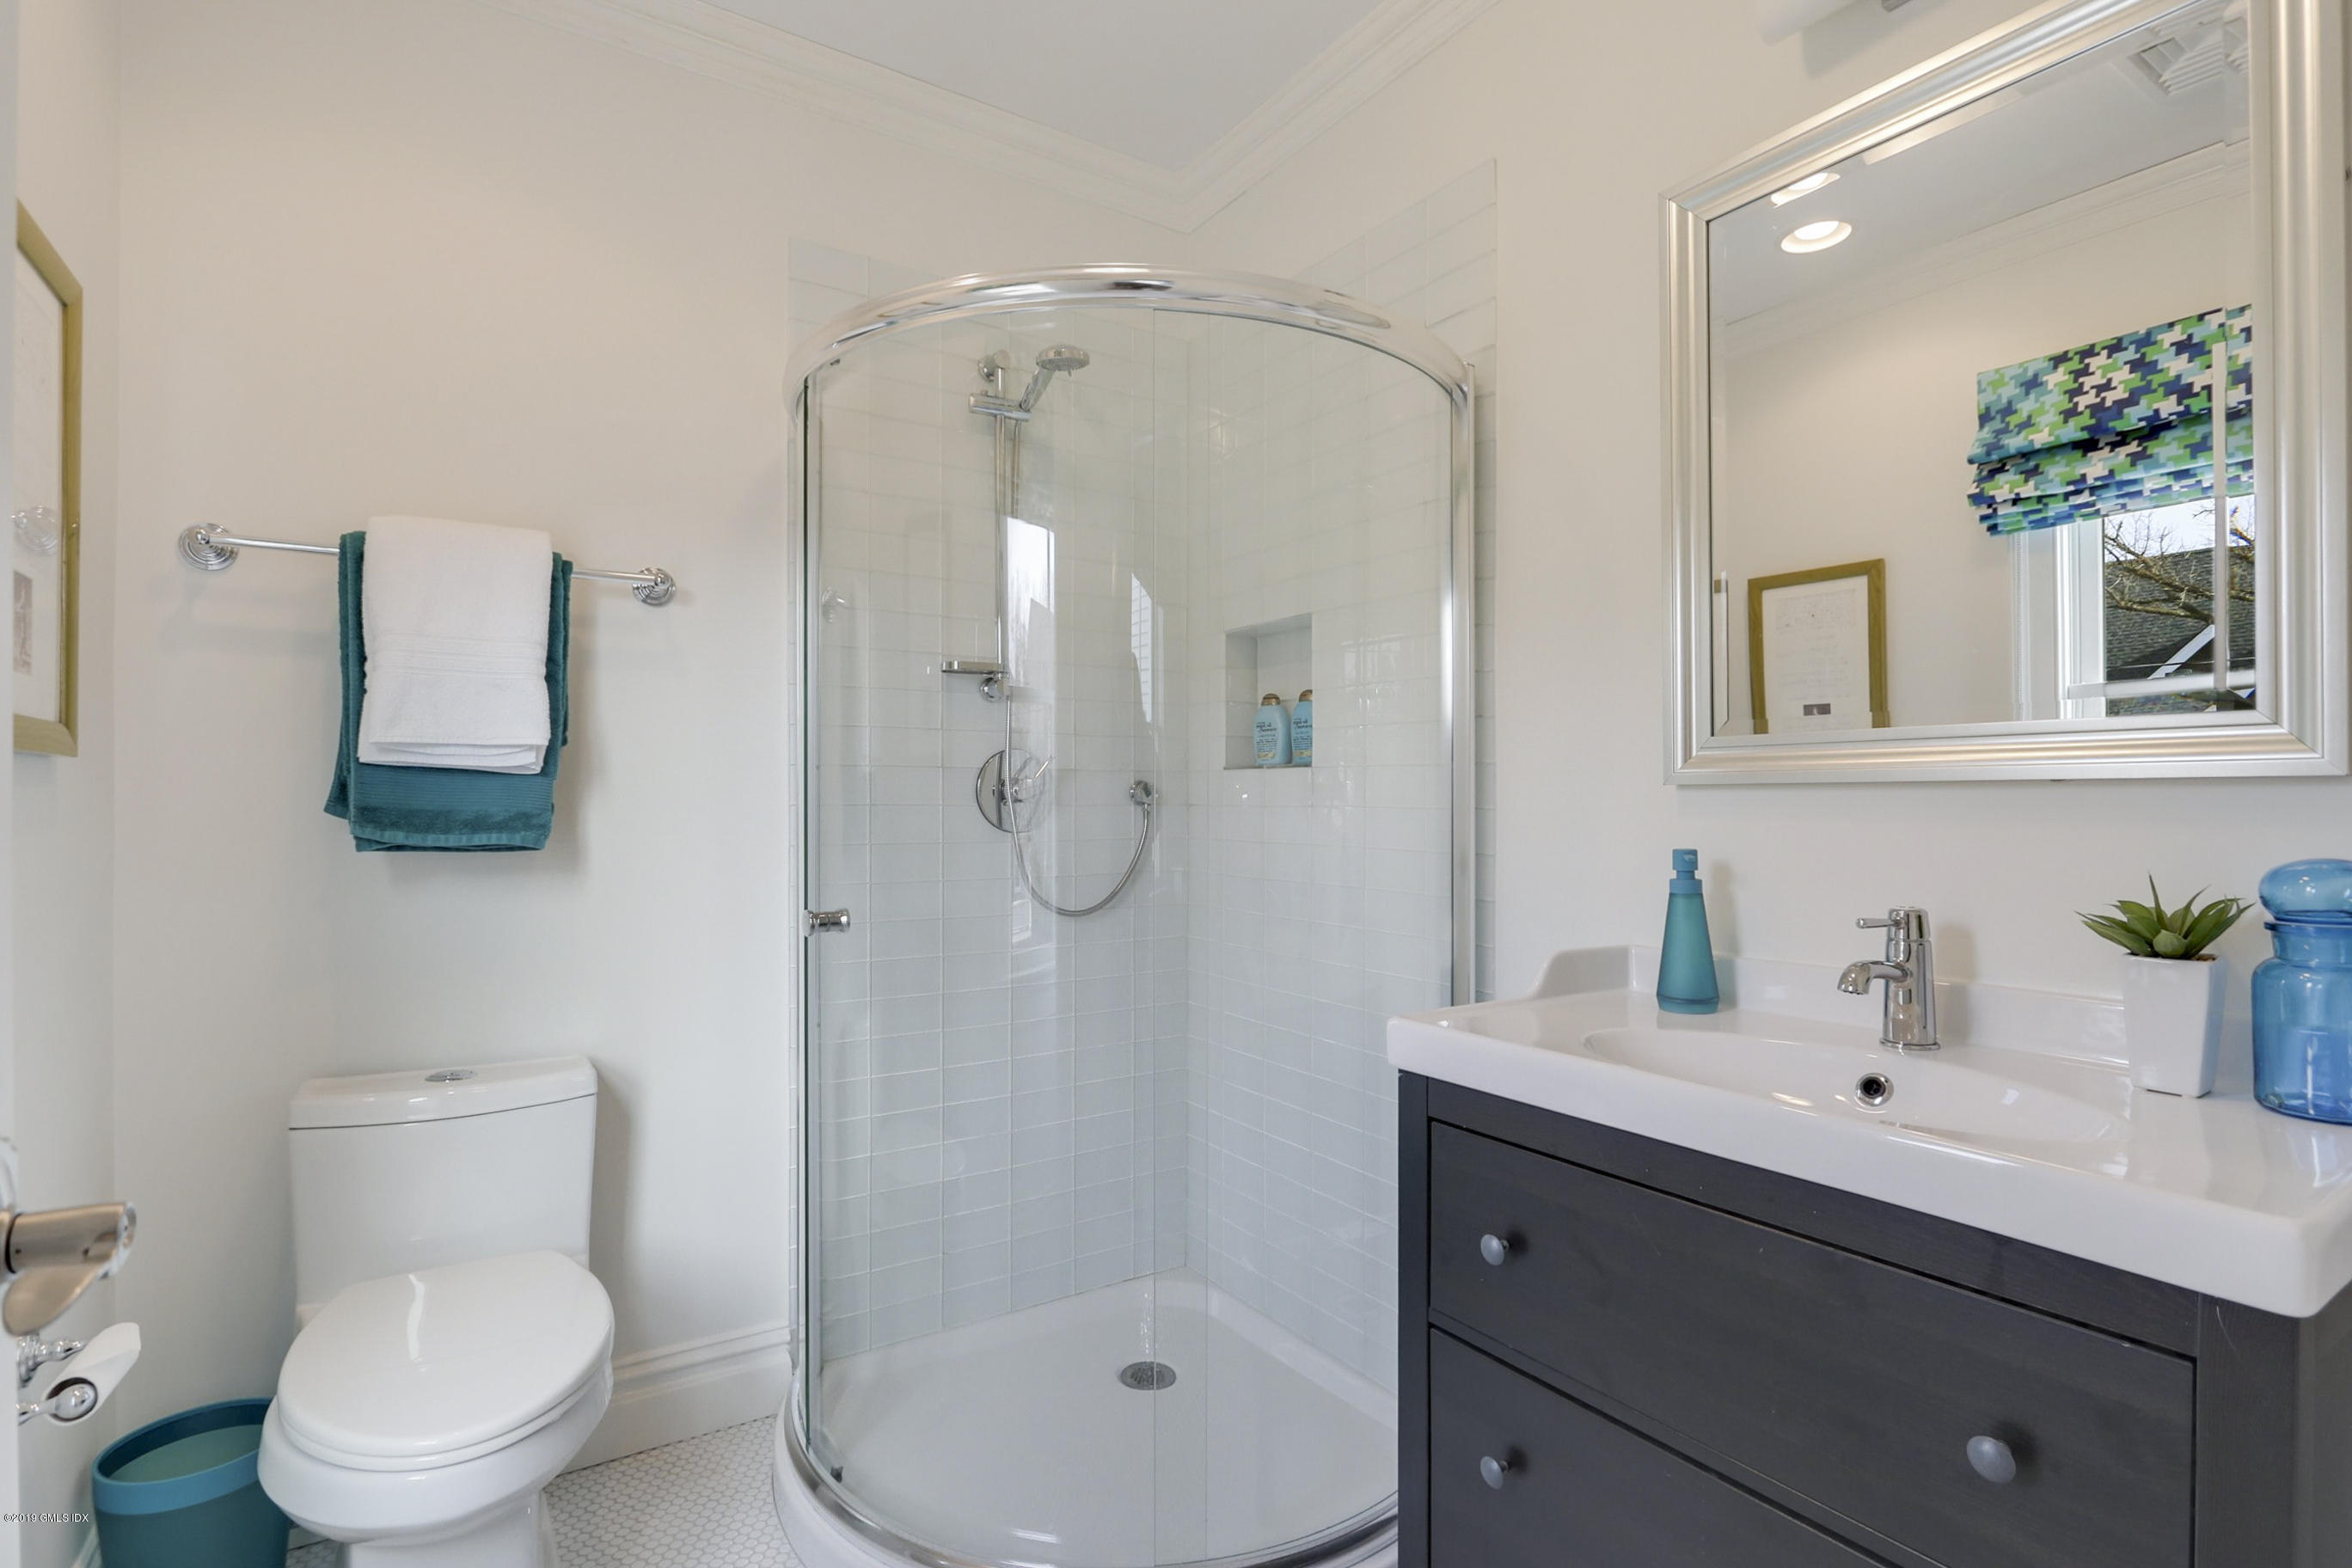 67 Prospect Street,Greenwich,Connecticut 06830,4 Bedrooms Bedrooms,3 BathroomsBathrooms,Single family,Prospect,105244